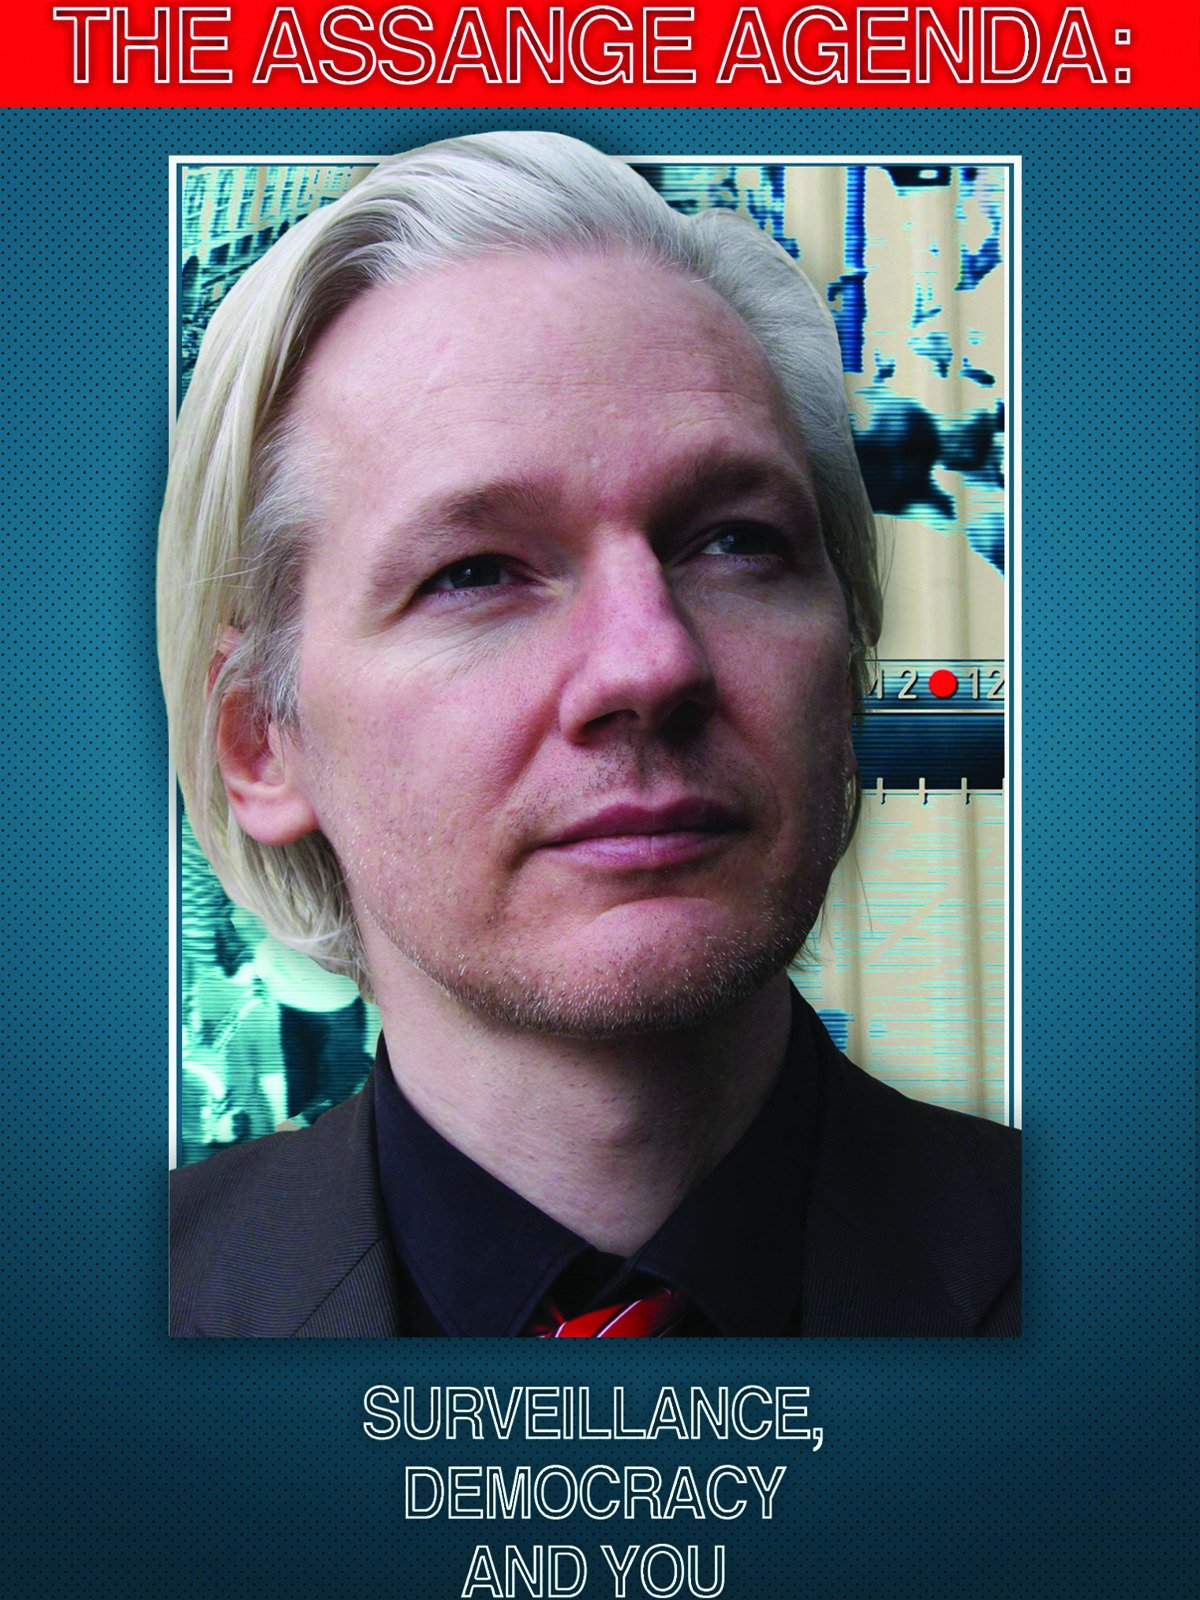 Assange Agenda: Surveillance, Democracy and You